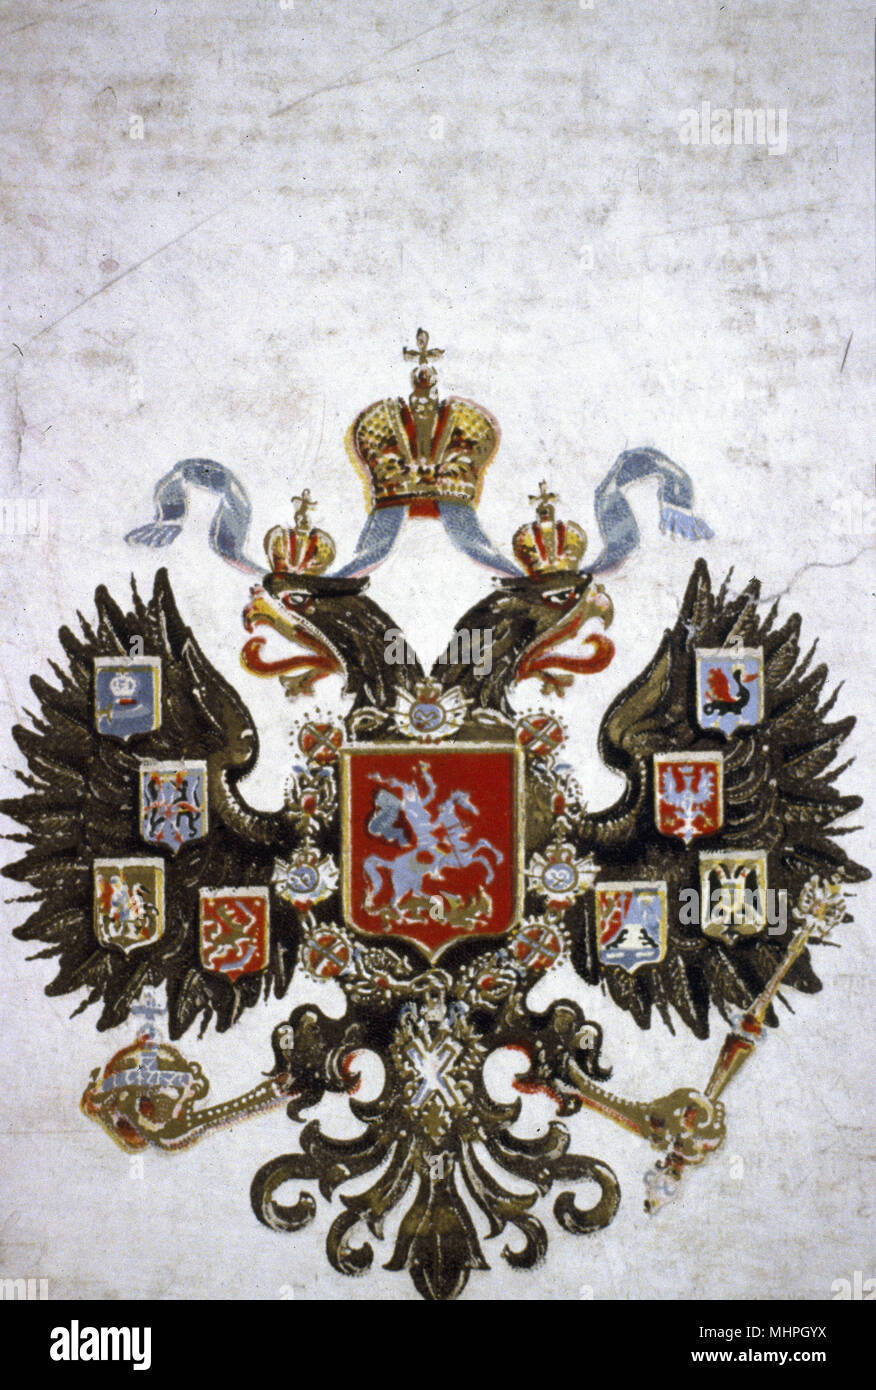 The Imperial Russian coat of arms (Romanov family), a double-headed